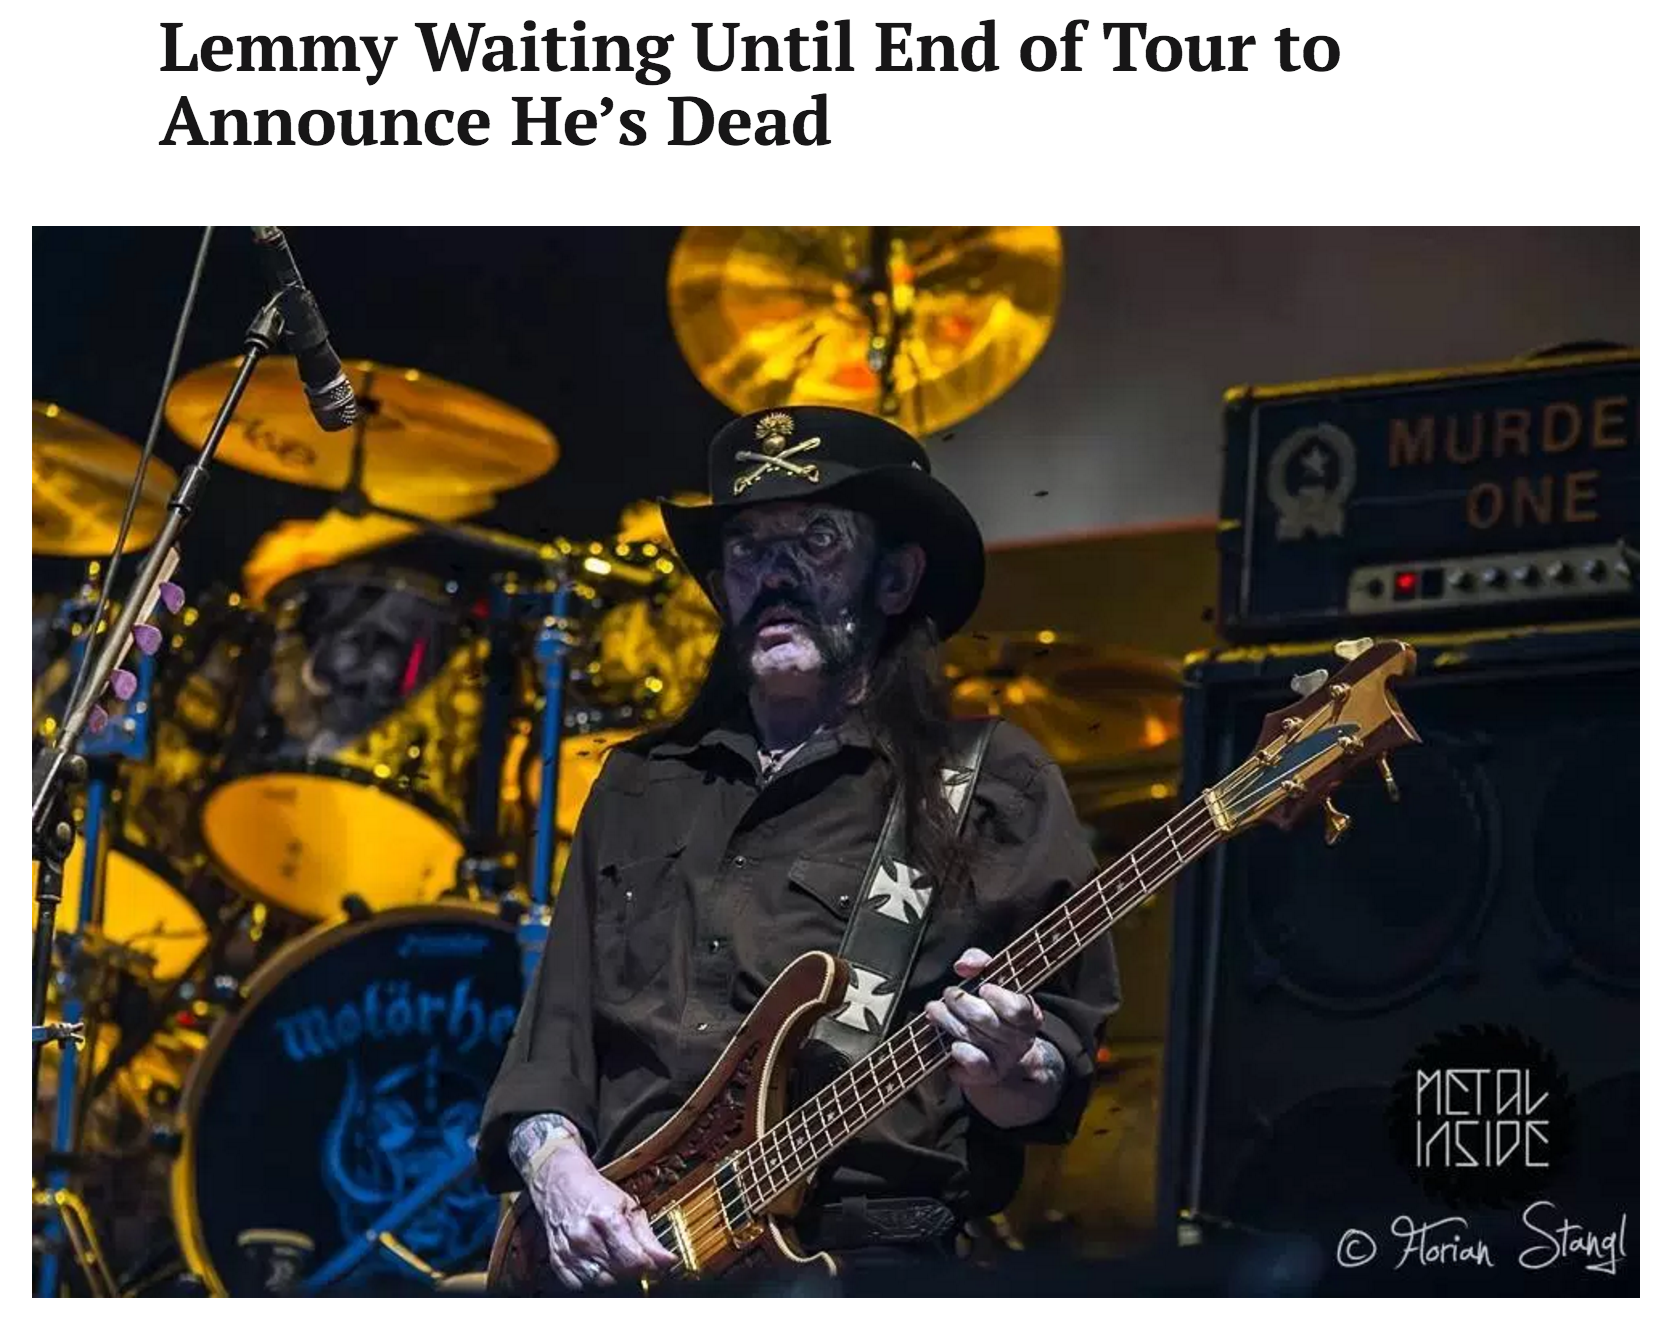 Lemmy Waiting Until End of Tour to Announce He's Dead